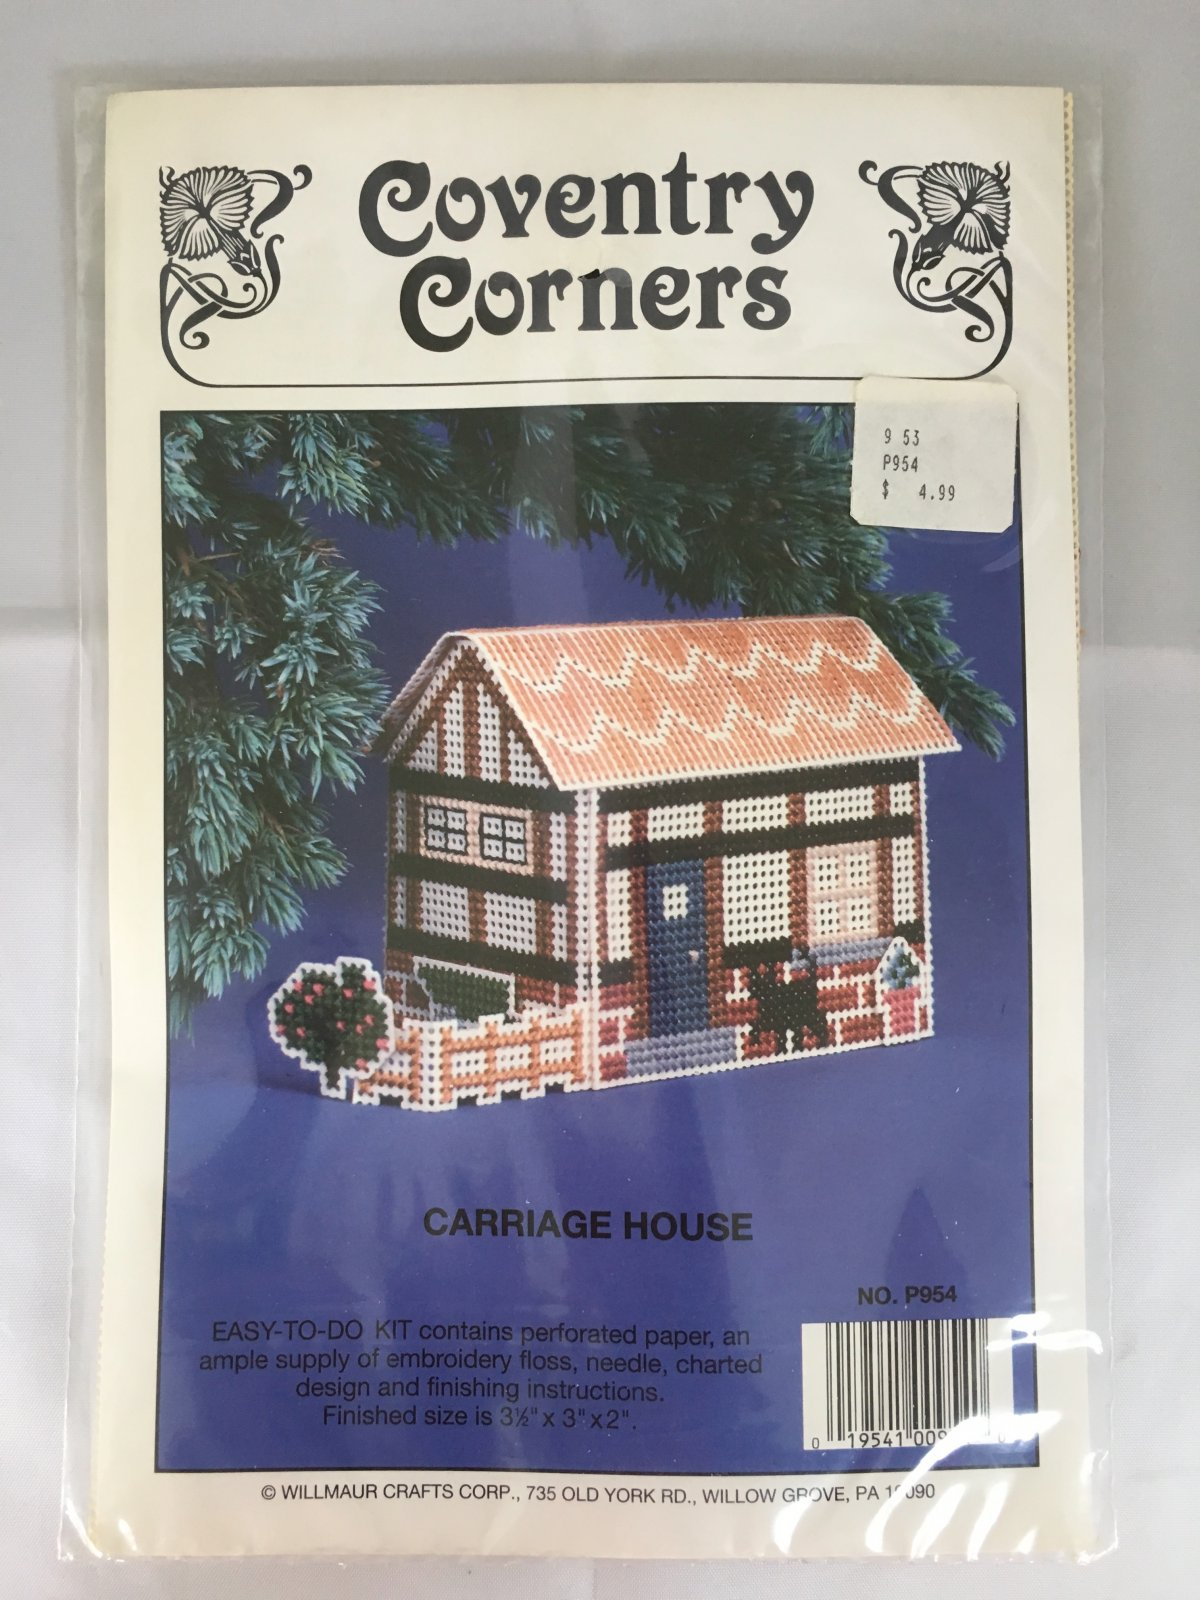 Astor Place: Coventry Corners Carriage House Kit P954